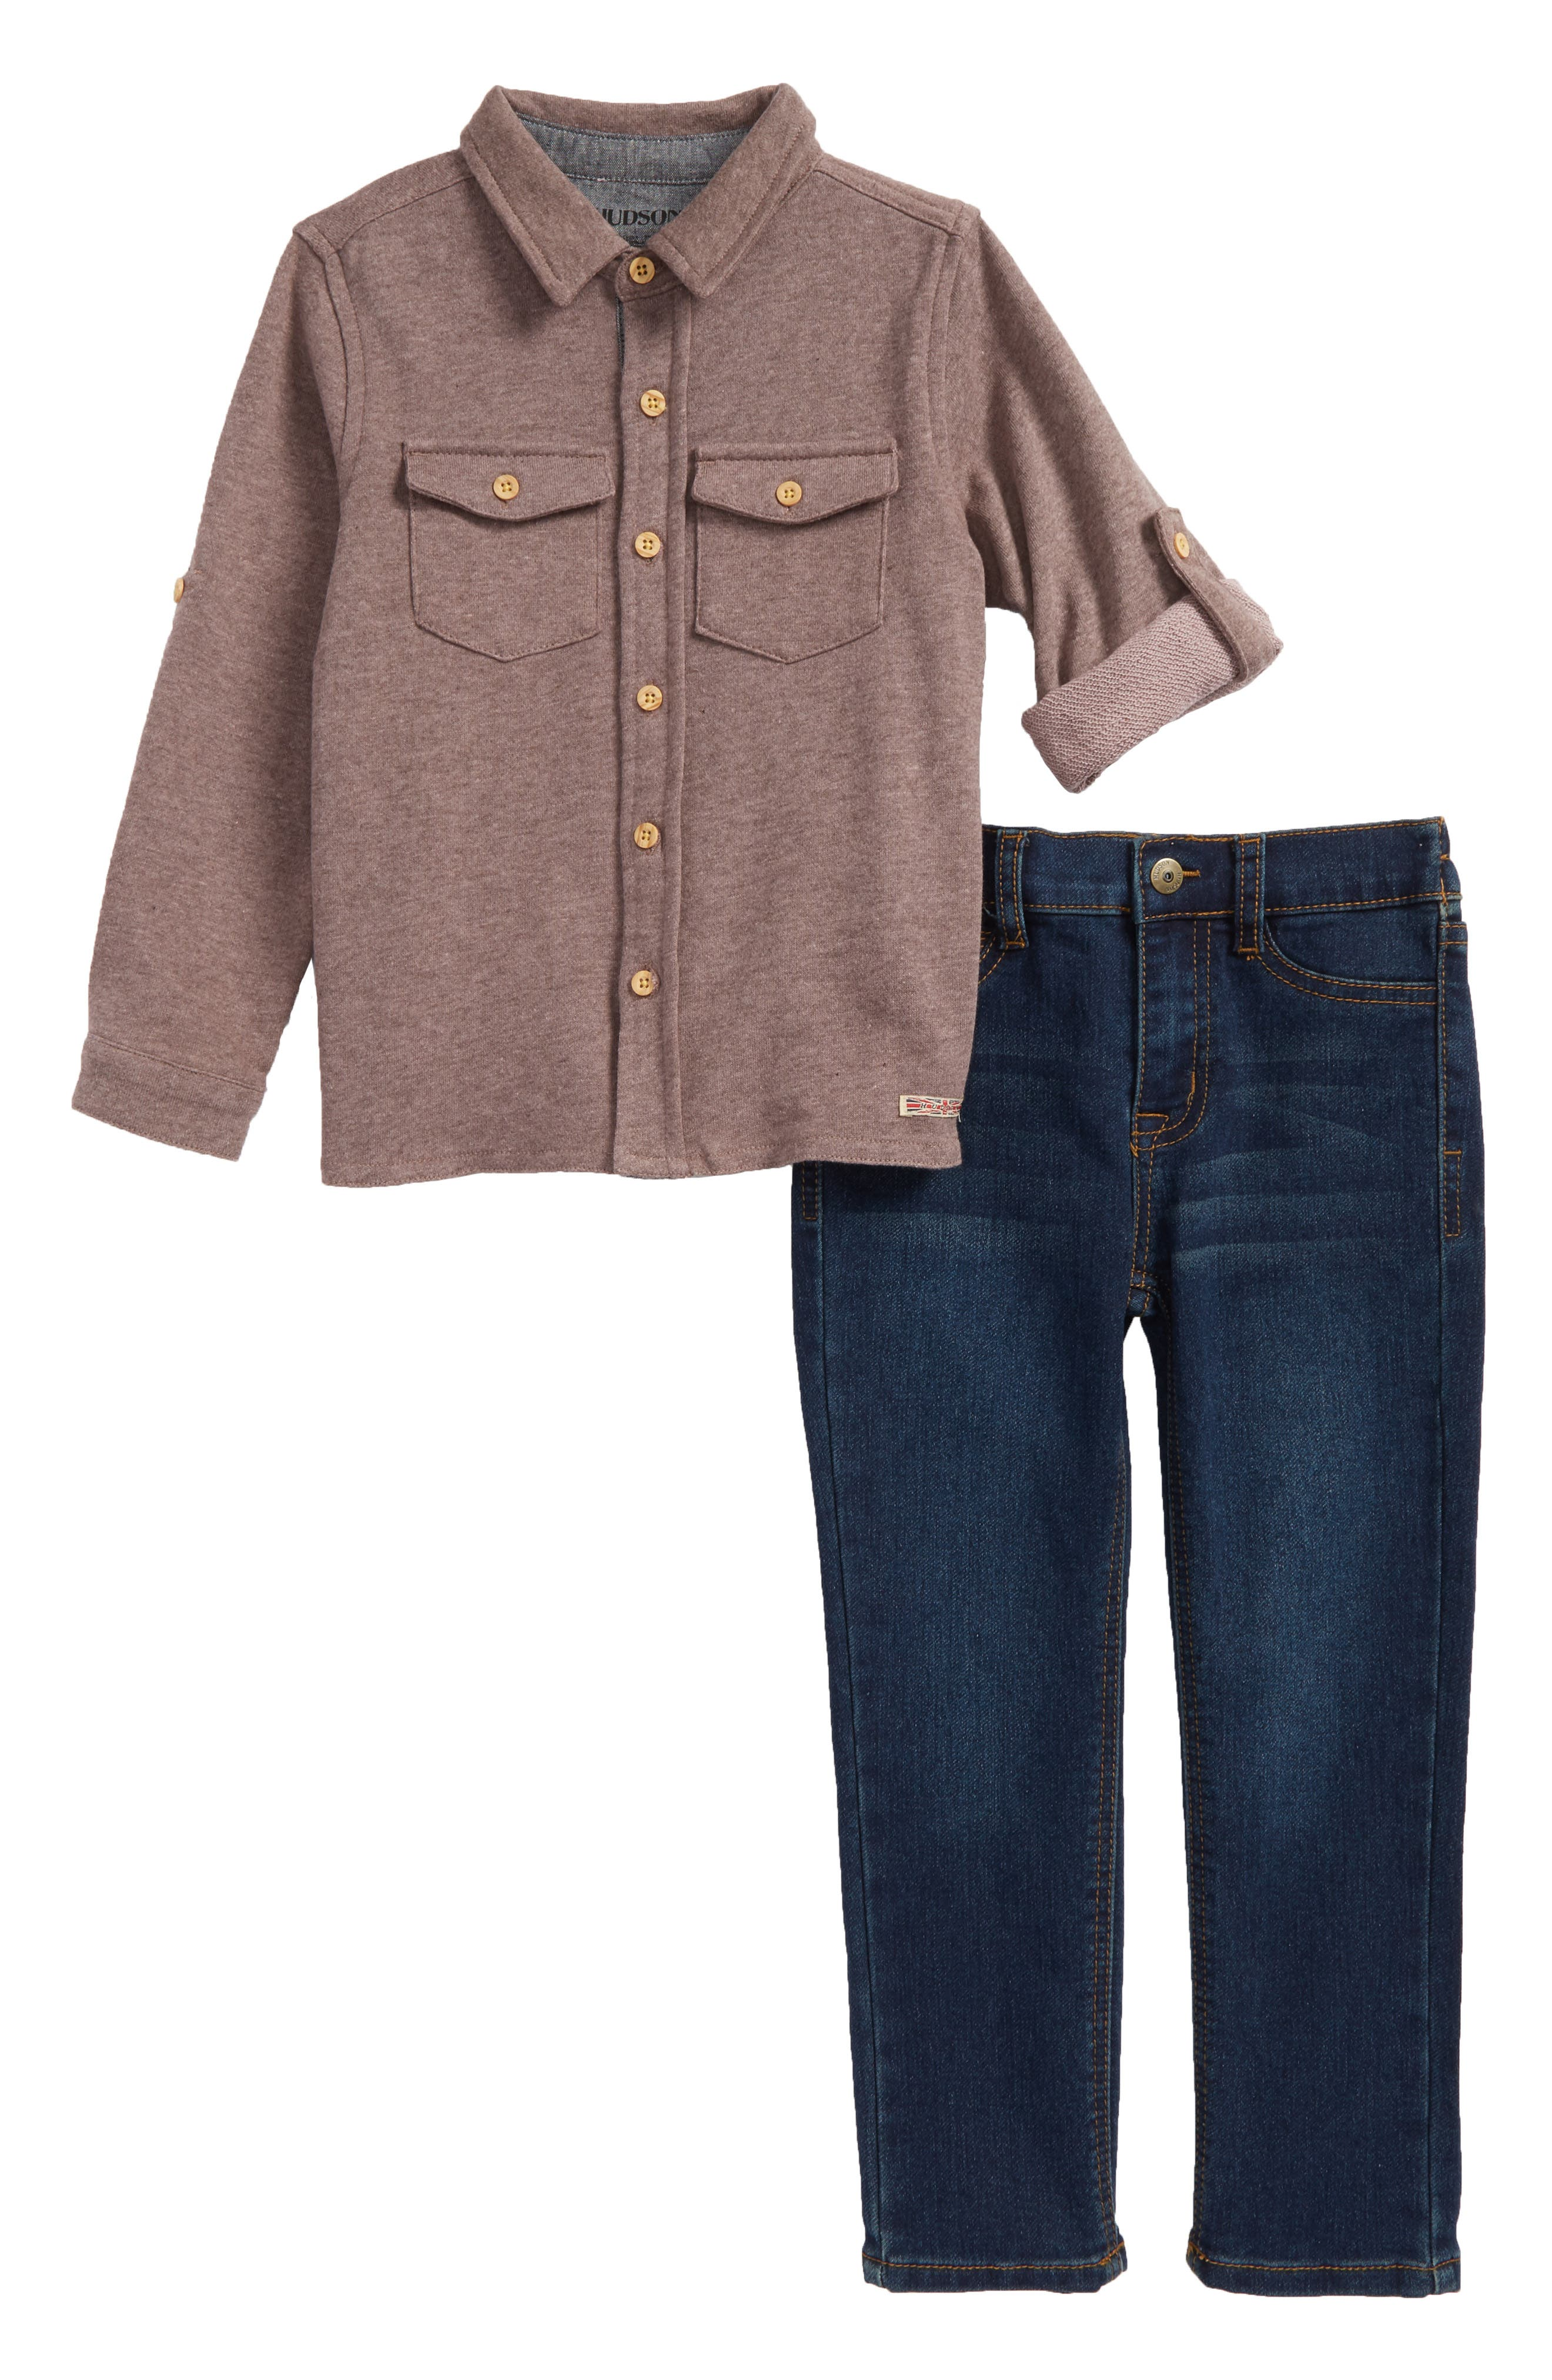 French Terry Shirt & Jeans Set,                             Main thumbnail 1, color,                             491